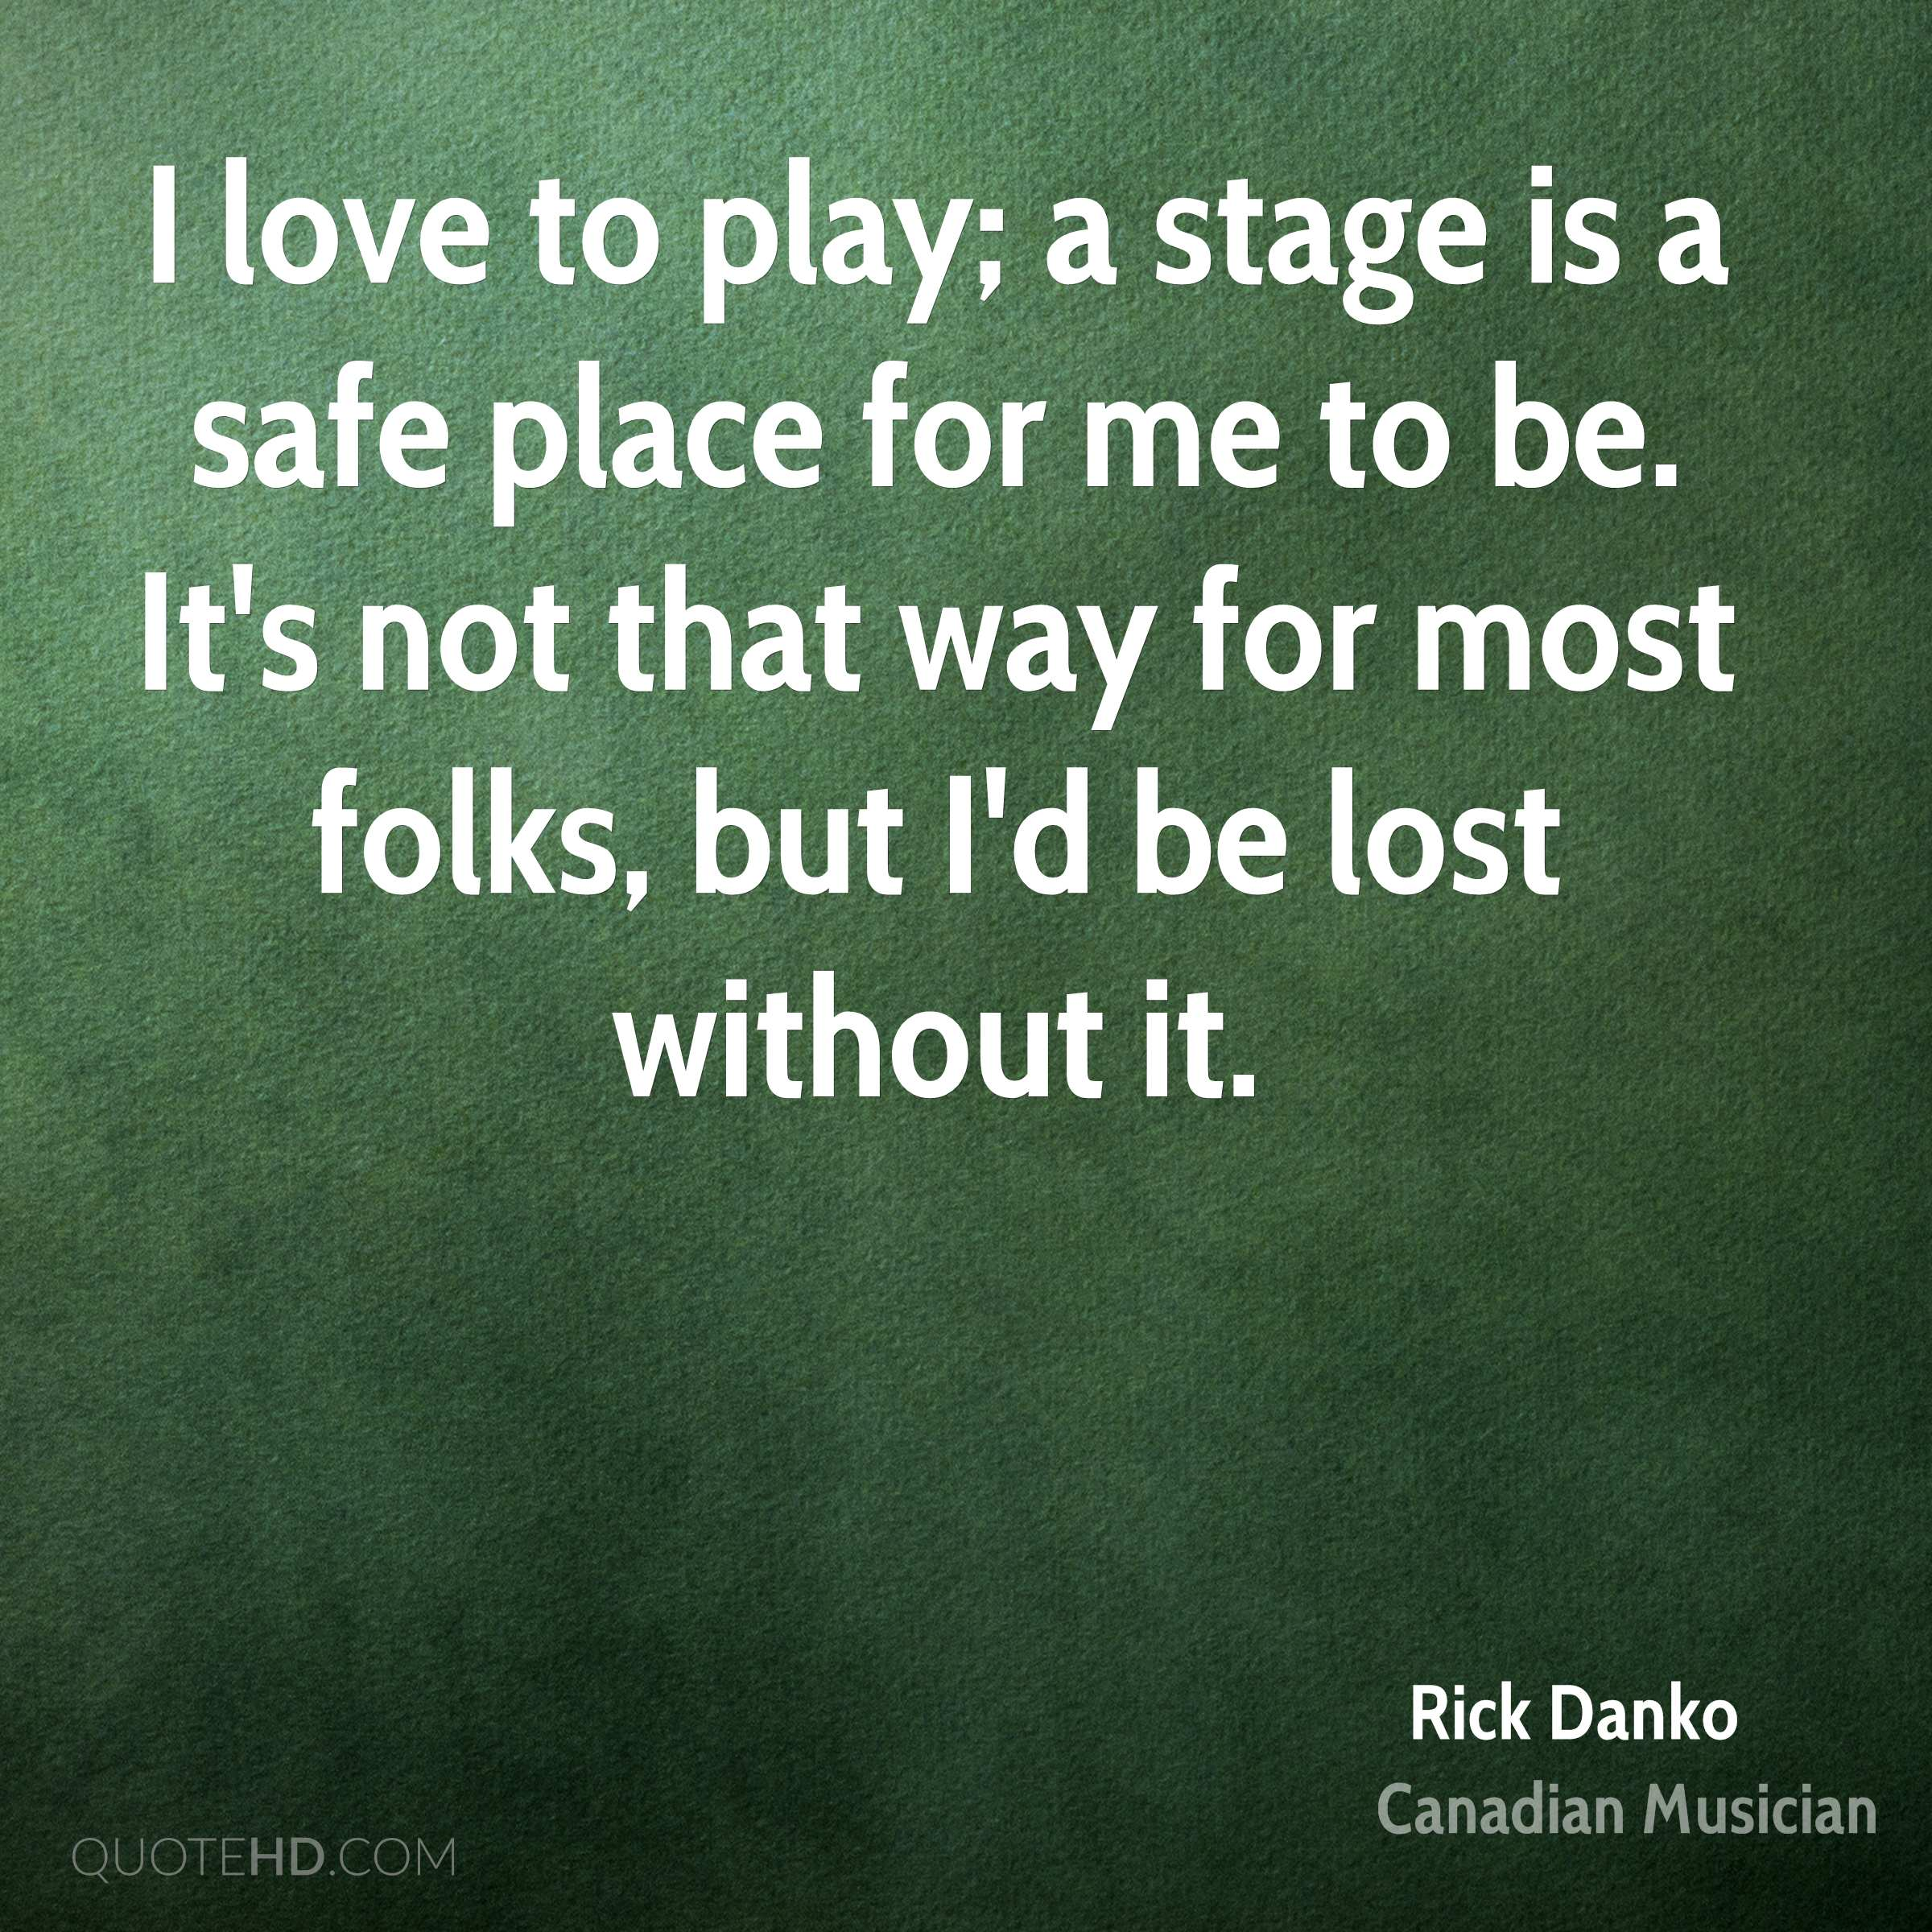 I love to play; a stage is a safe place for me to be. It's not that way for most folks, but I'd be lost without it.